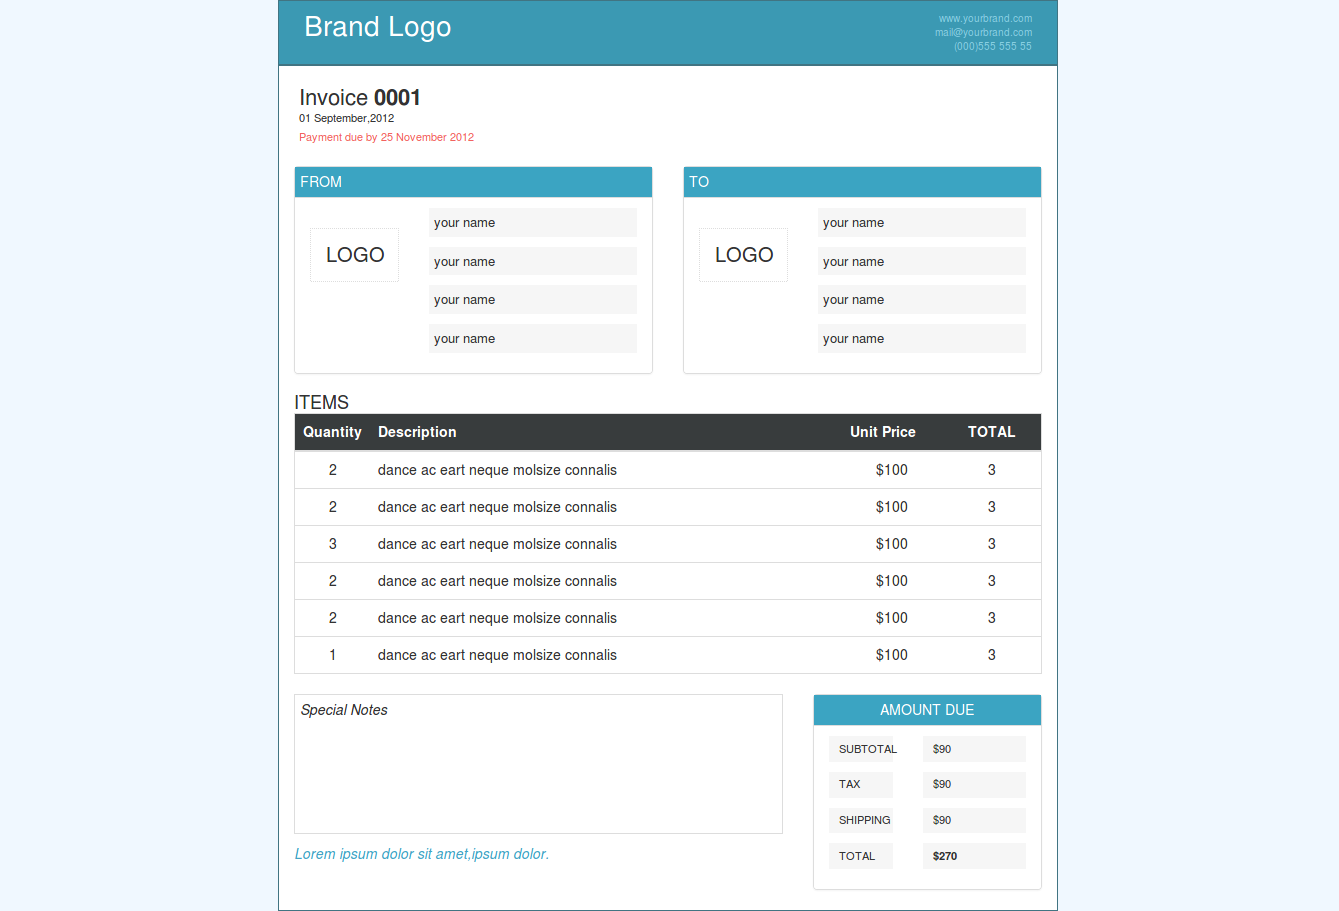 Invoice Page Design Using Html Css And Bootstrap Html Css Page Design Css